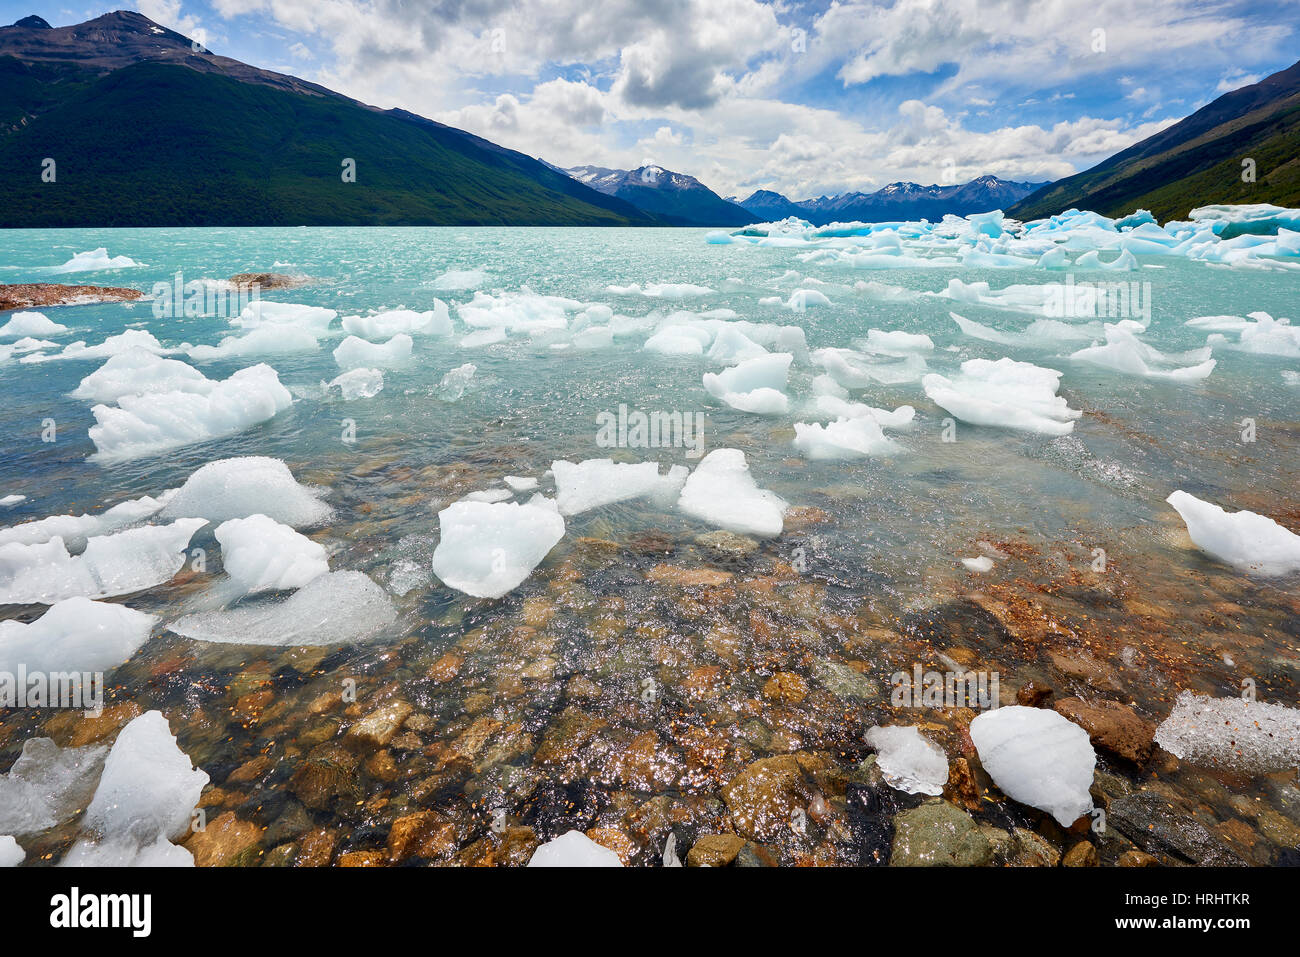 Blocks of ice float and wash ashore, Los Glaciares National Park, UNESCO, Patagonia, Argentina. - Stock Image